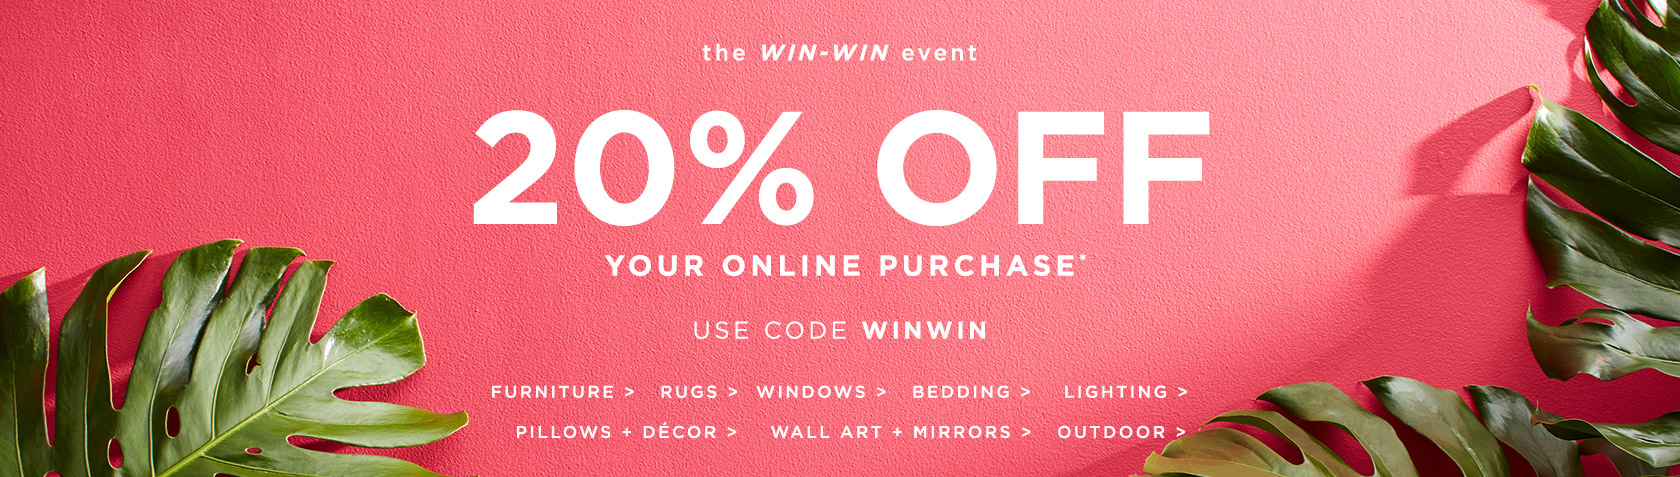 20% Off Your Online Purchase! Use Code WINWIN